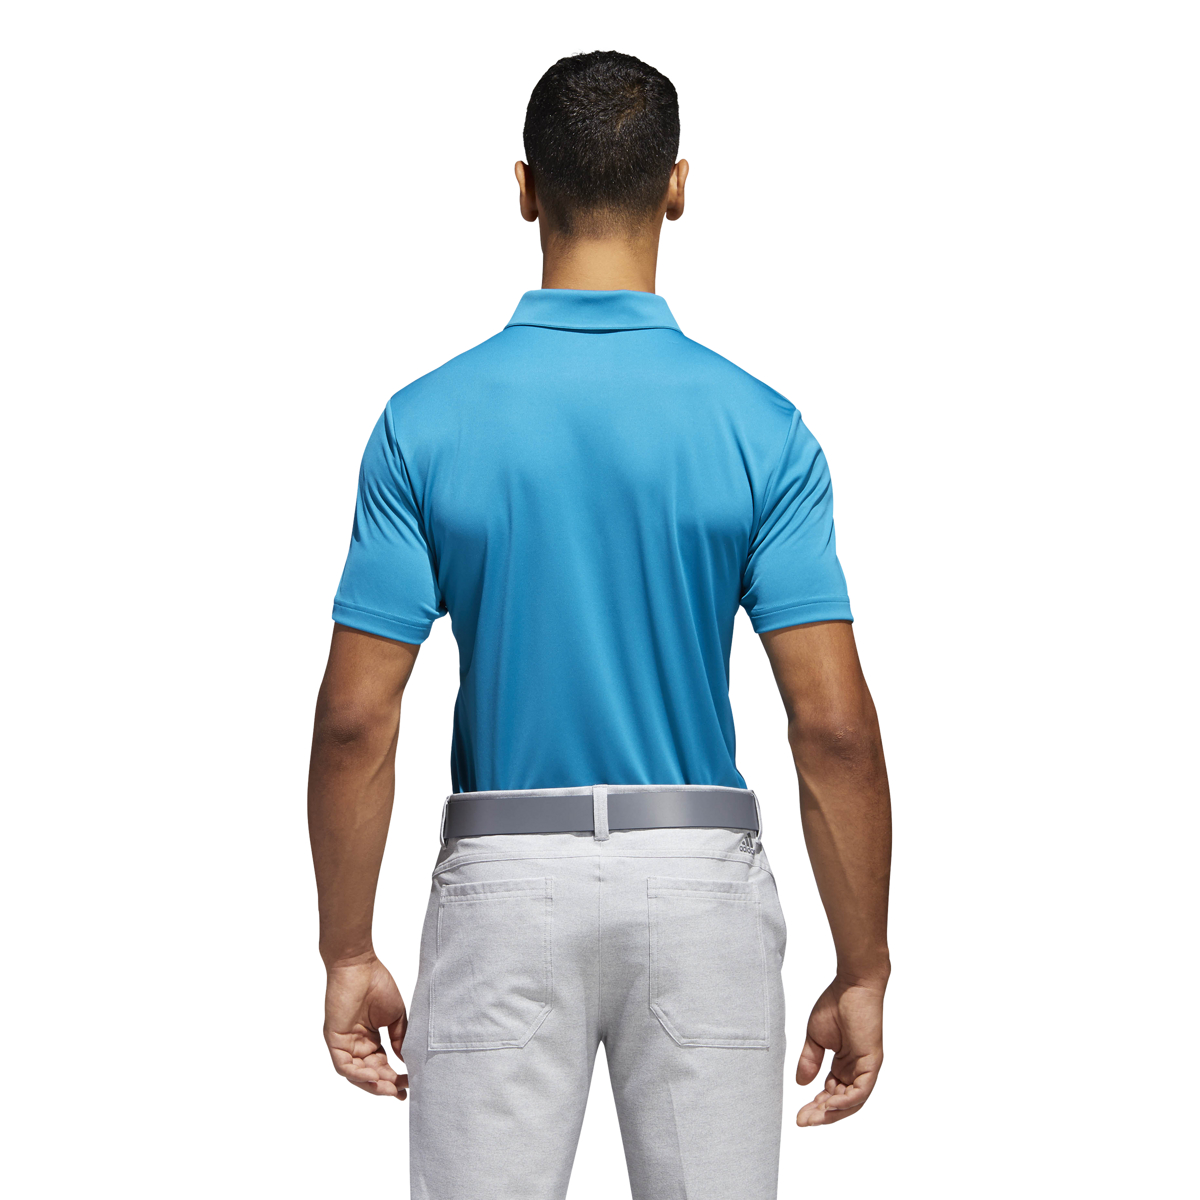 Adidas-Golf-Climacool-Chest-Print-Men-039-s-Polo-Shirt-Pick-Size-amp-Color thumbnail 6